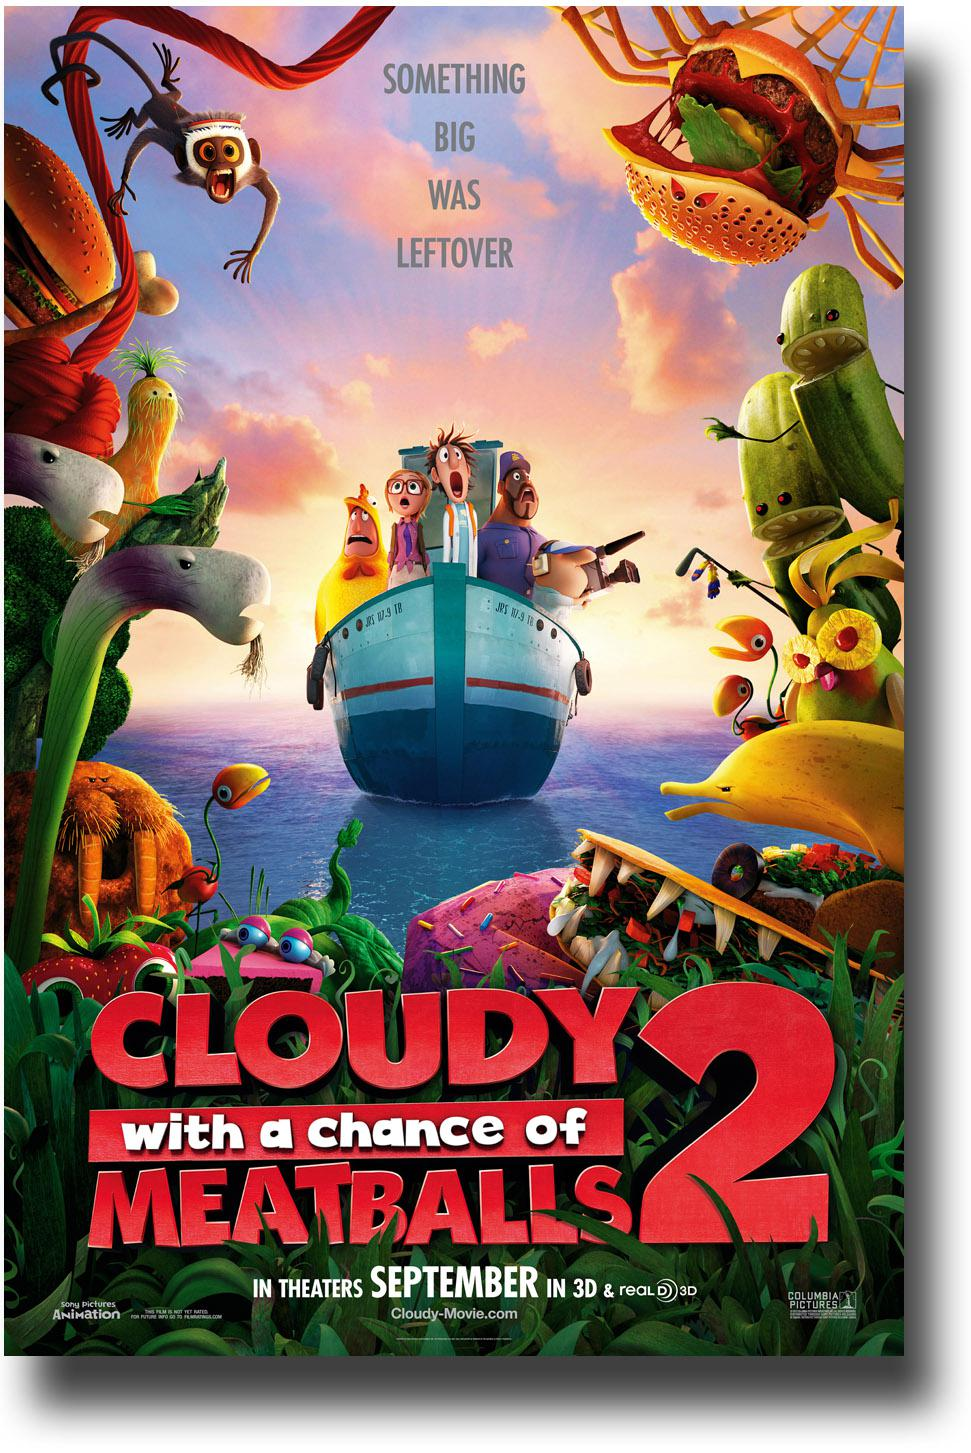 http://b-i.forbesimg.com/scottmendelson/files/2013/09/Cloudy-with-a-Chance-of-Meatballs-2-Boat-Teaser-drop.jpg